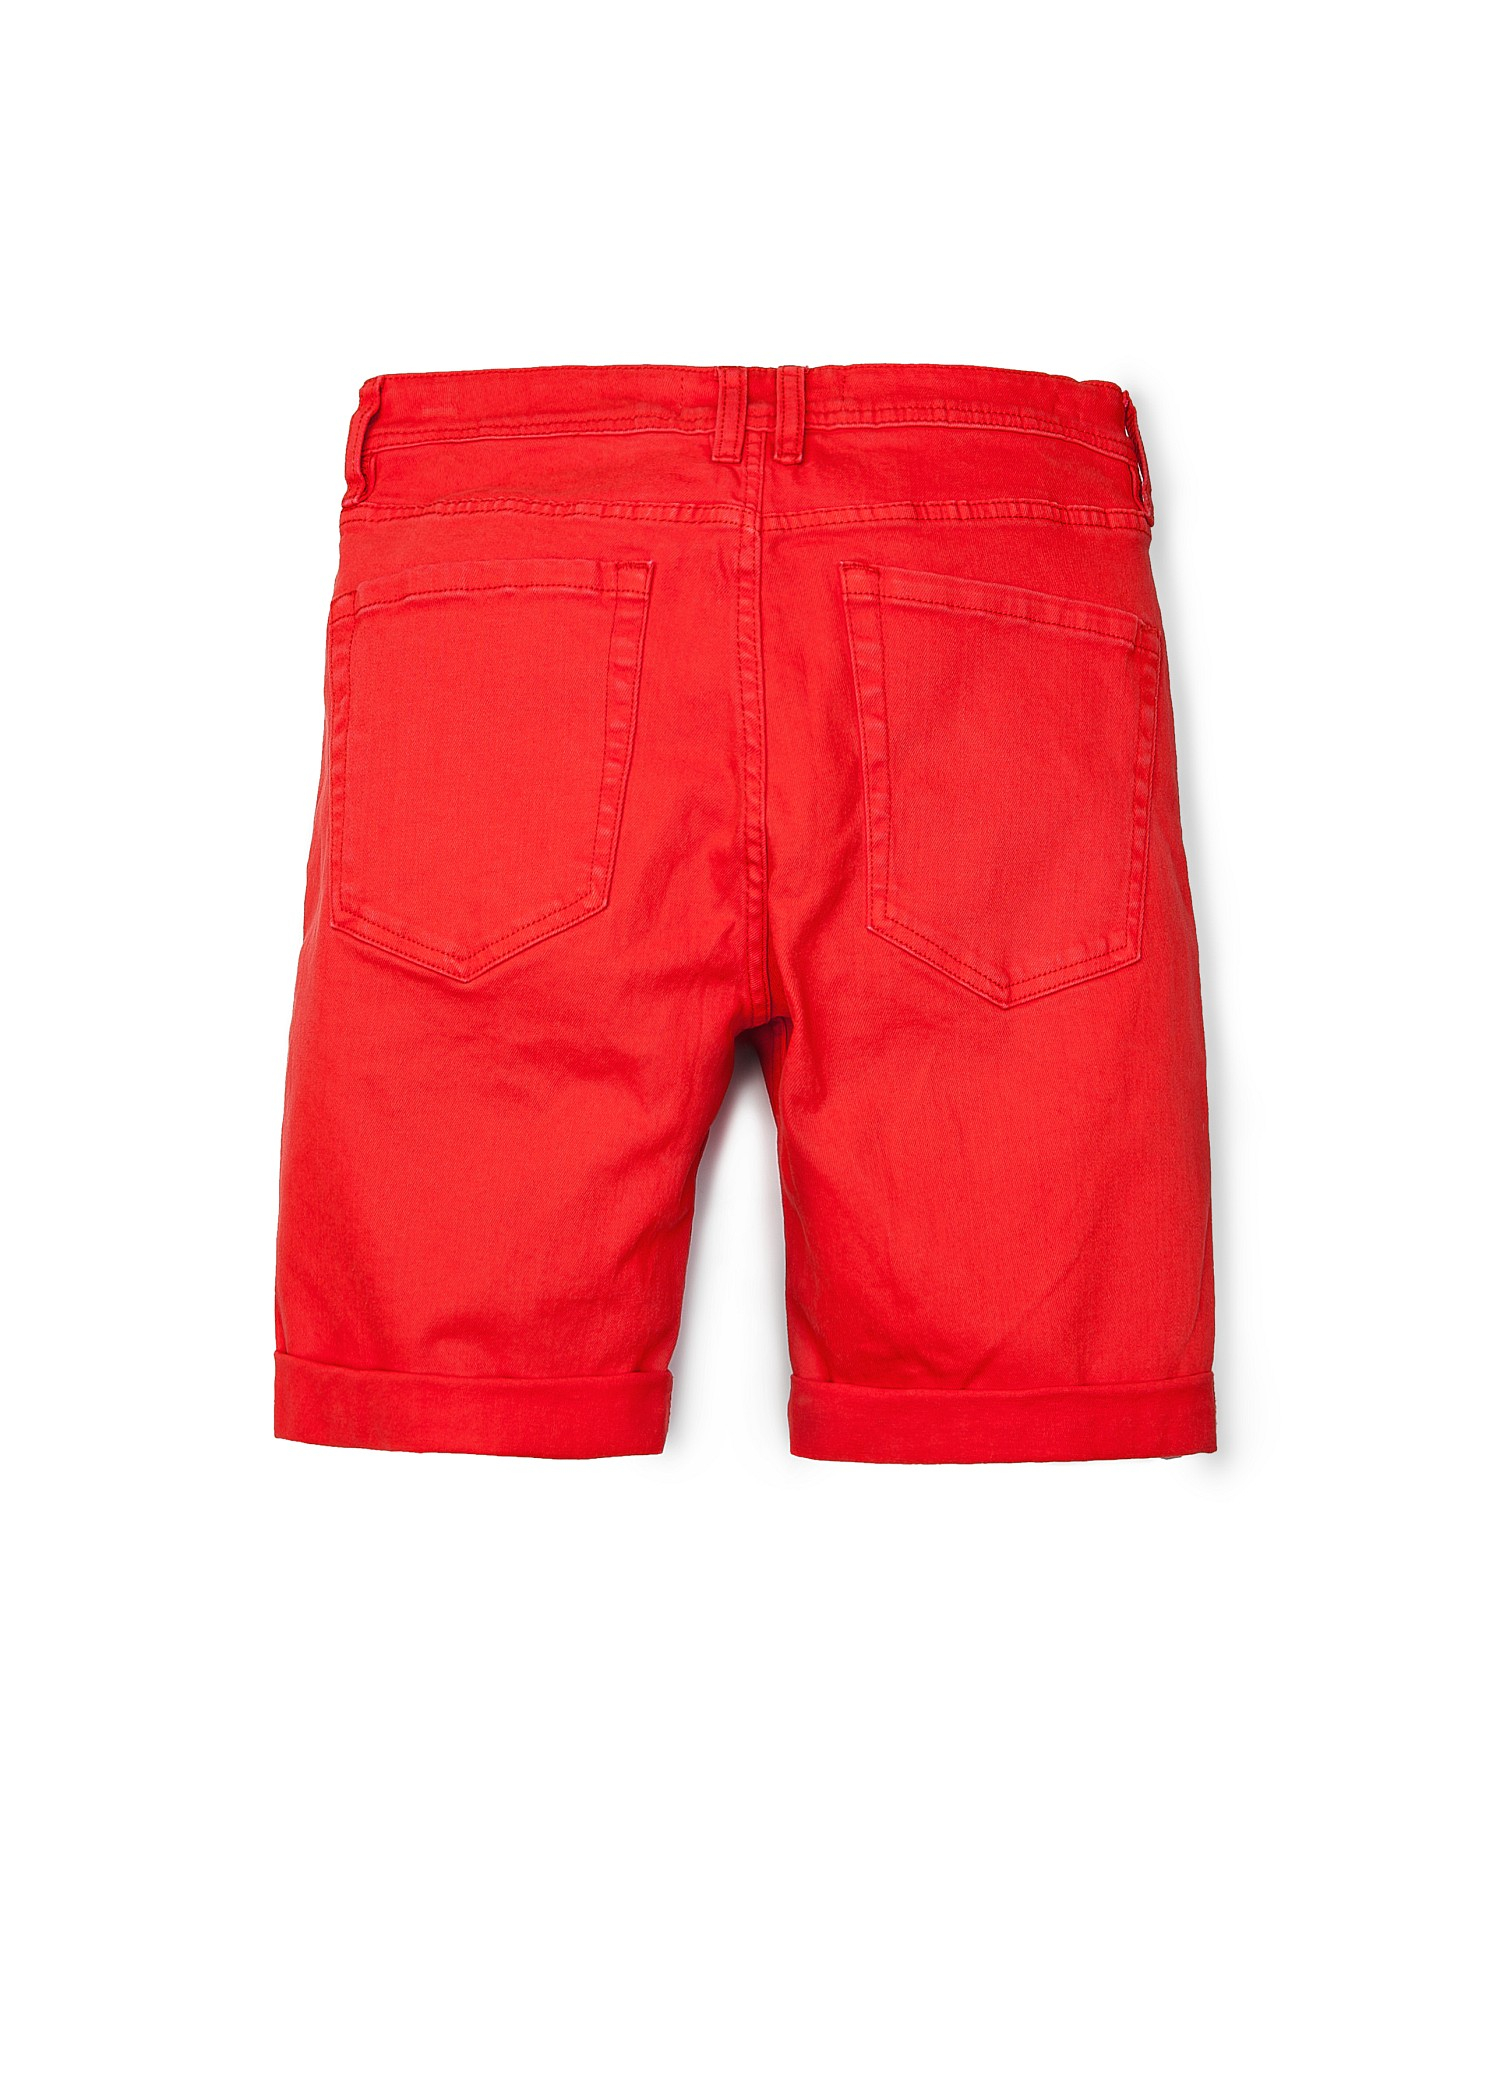 Grab a pair of denim shorts for women in a variety of rises from low to super high. Our denim shorts are also available in different washes from light to dark. Once you've got all the pairs of comfortable denim shorts you want, swing by and check out our collection of soft shorts for women.